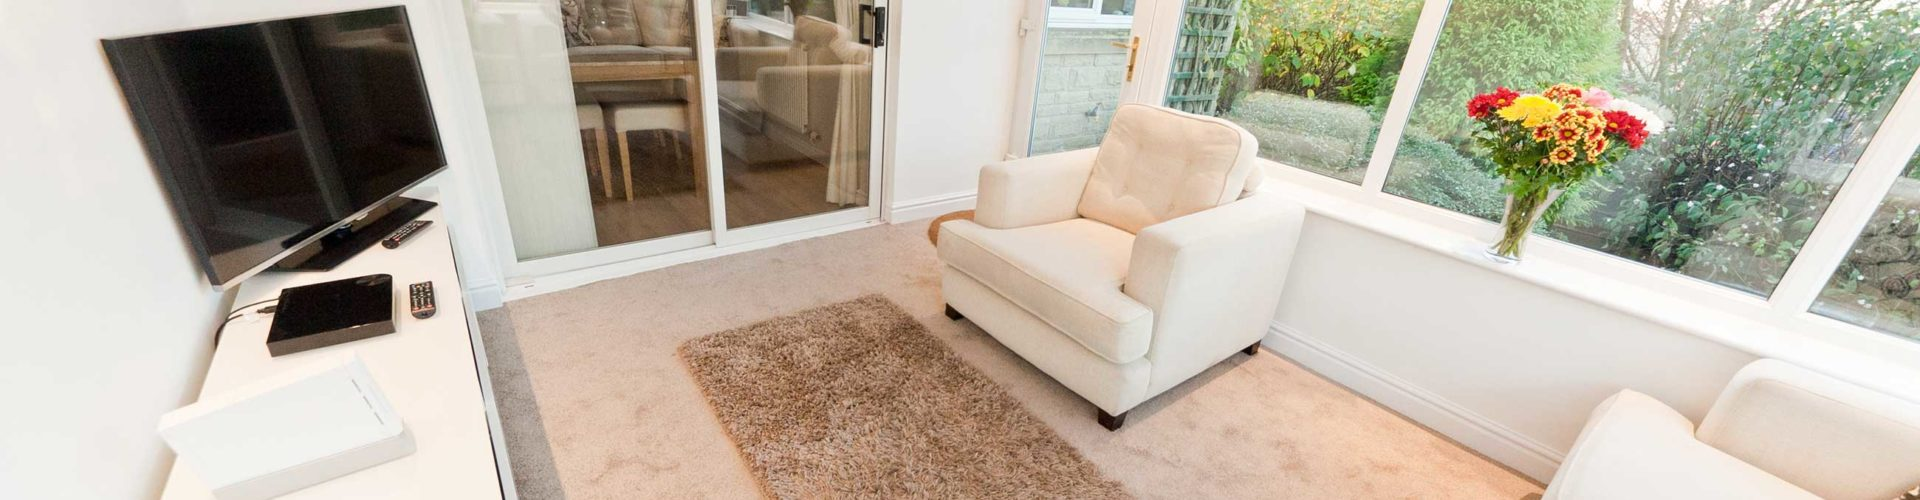 upvc patio door prices stevenage